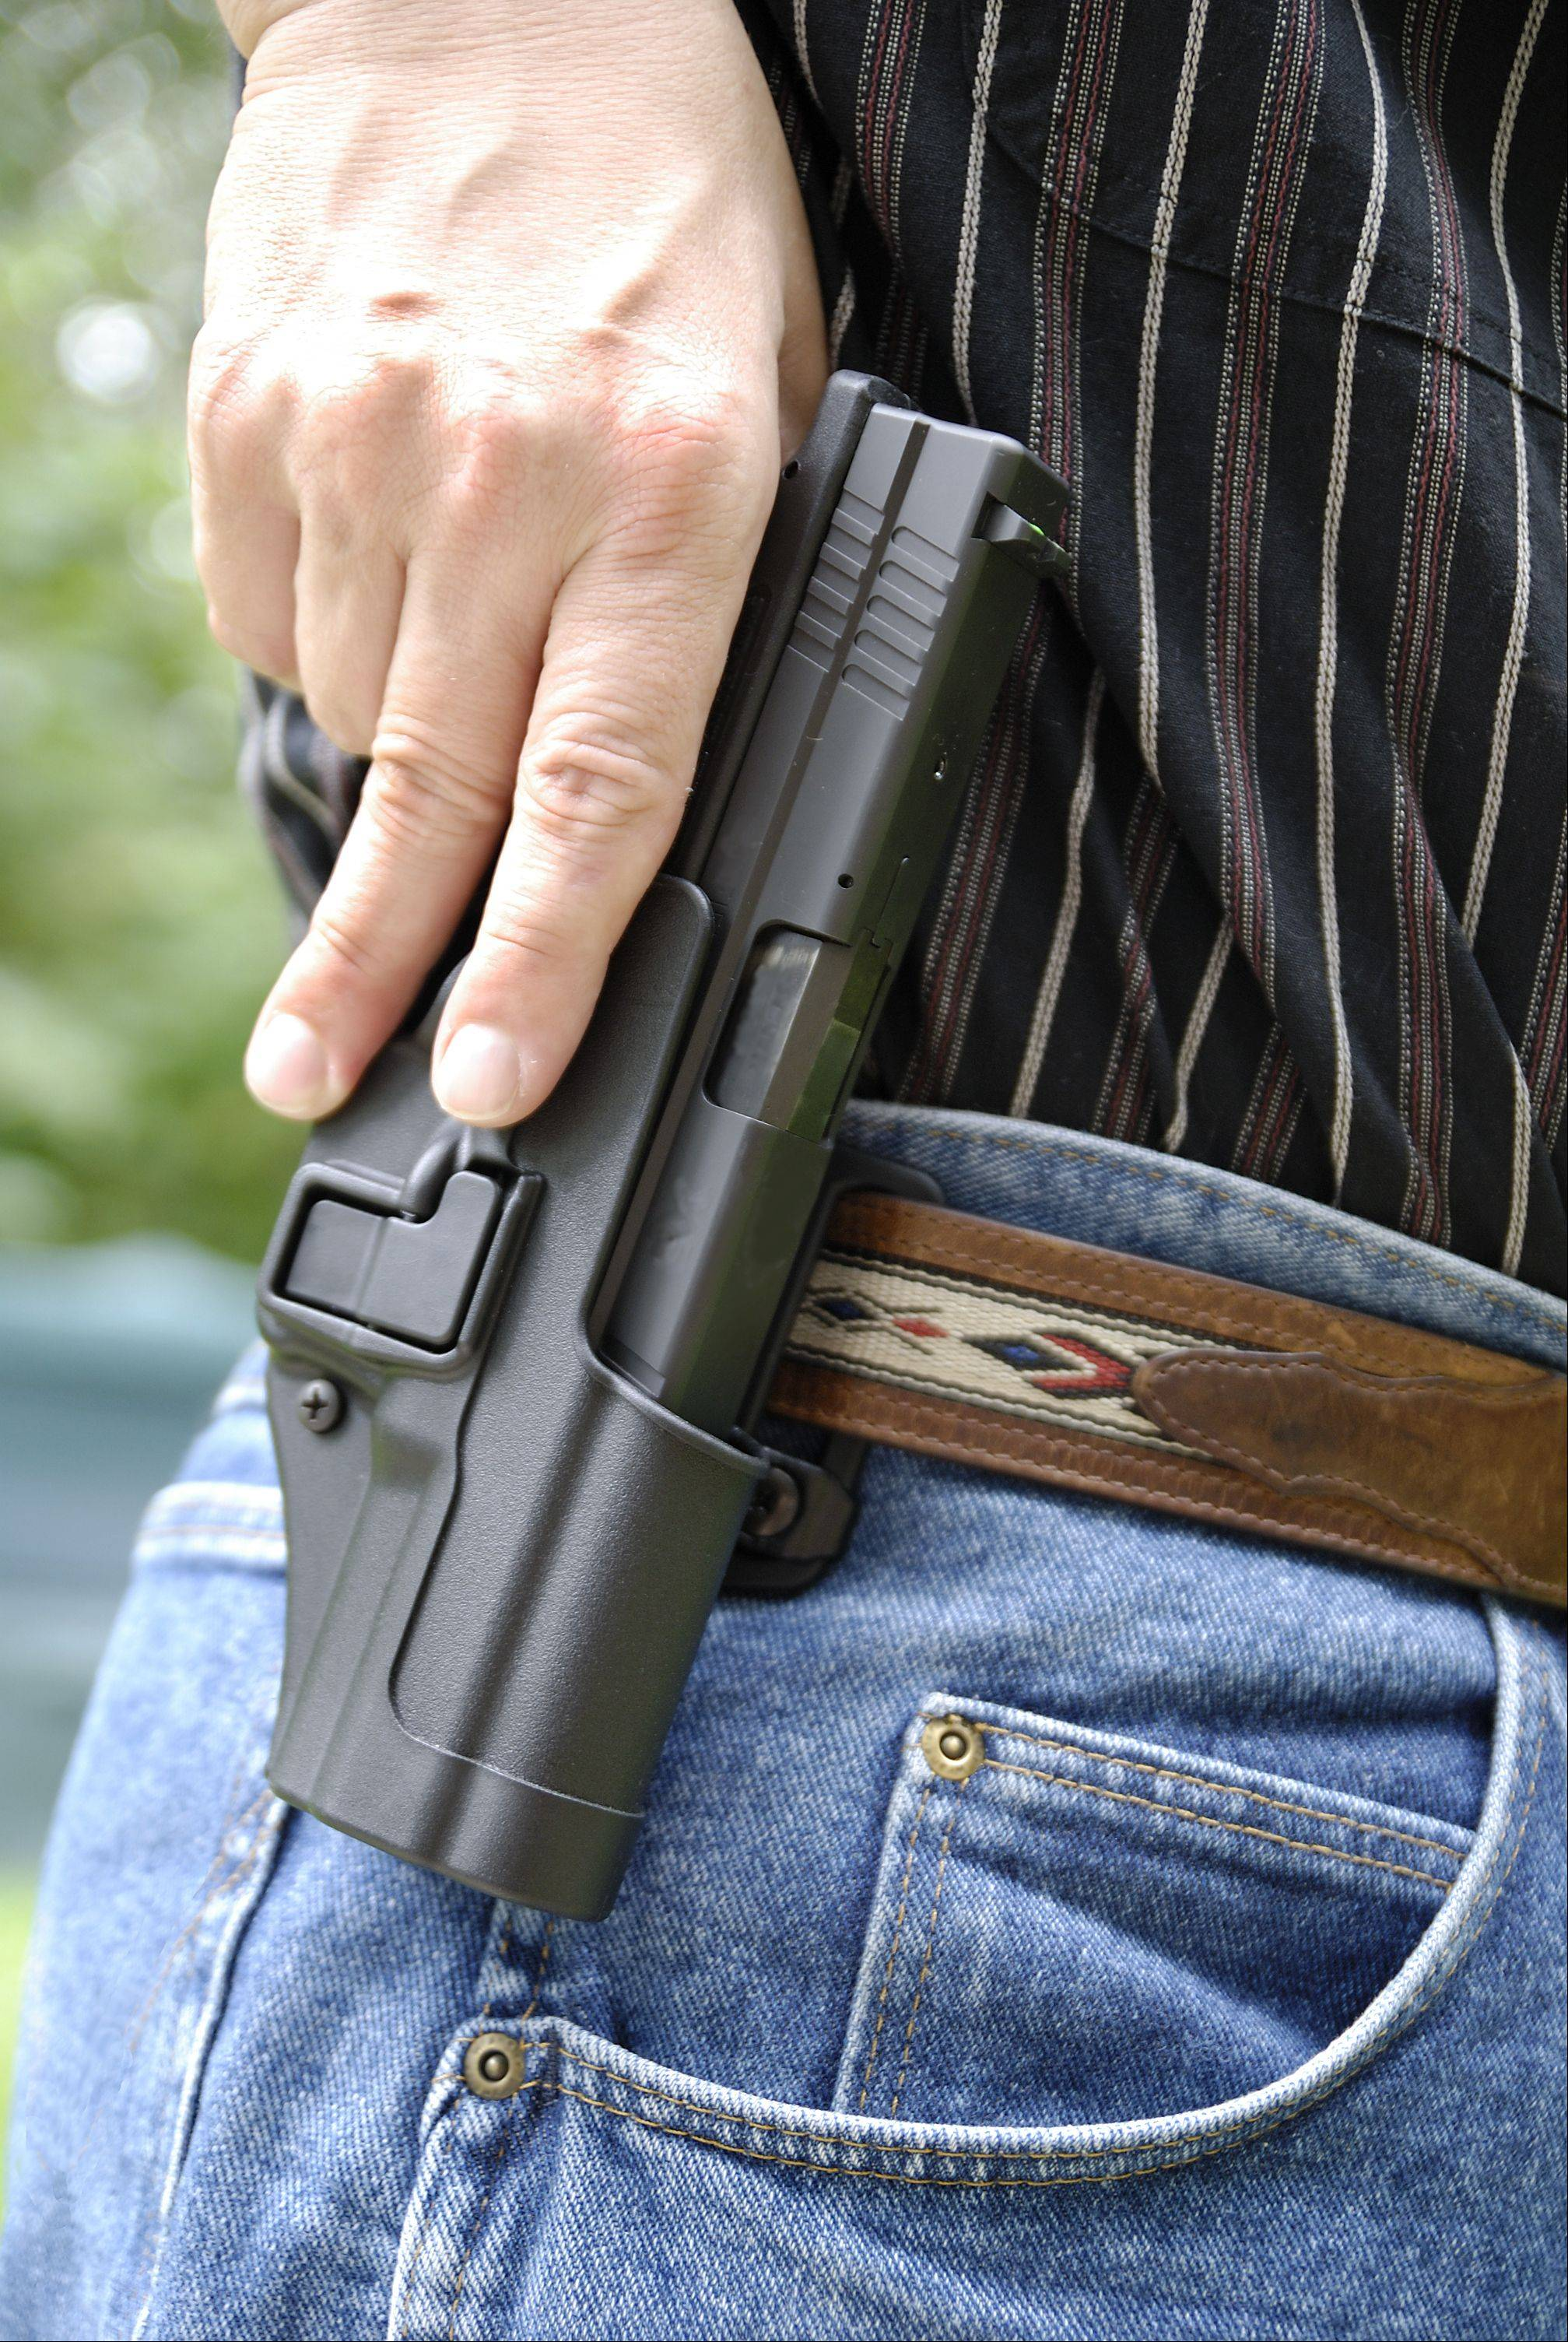 Businesses, churches mull concealed carry rules